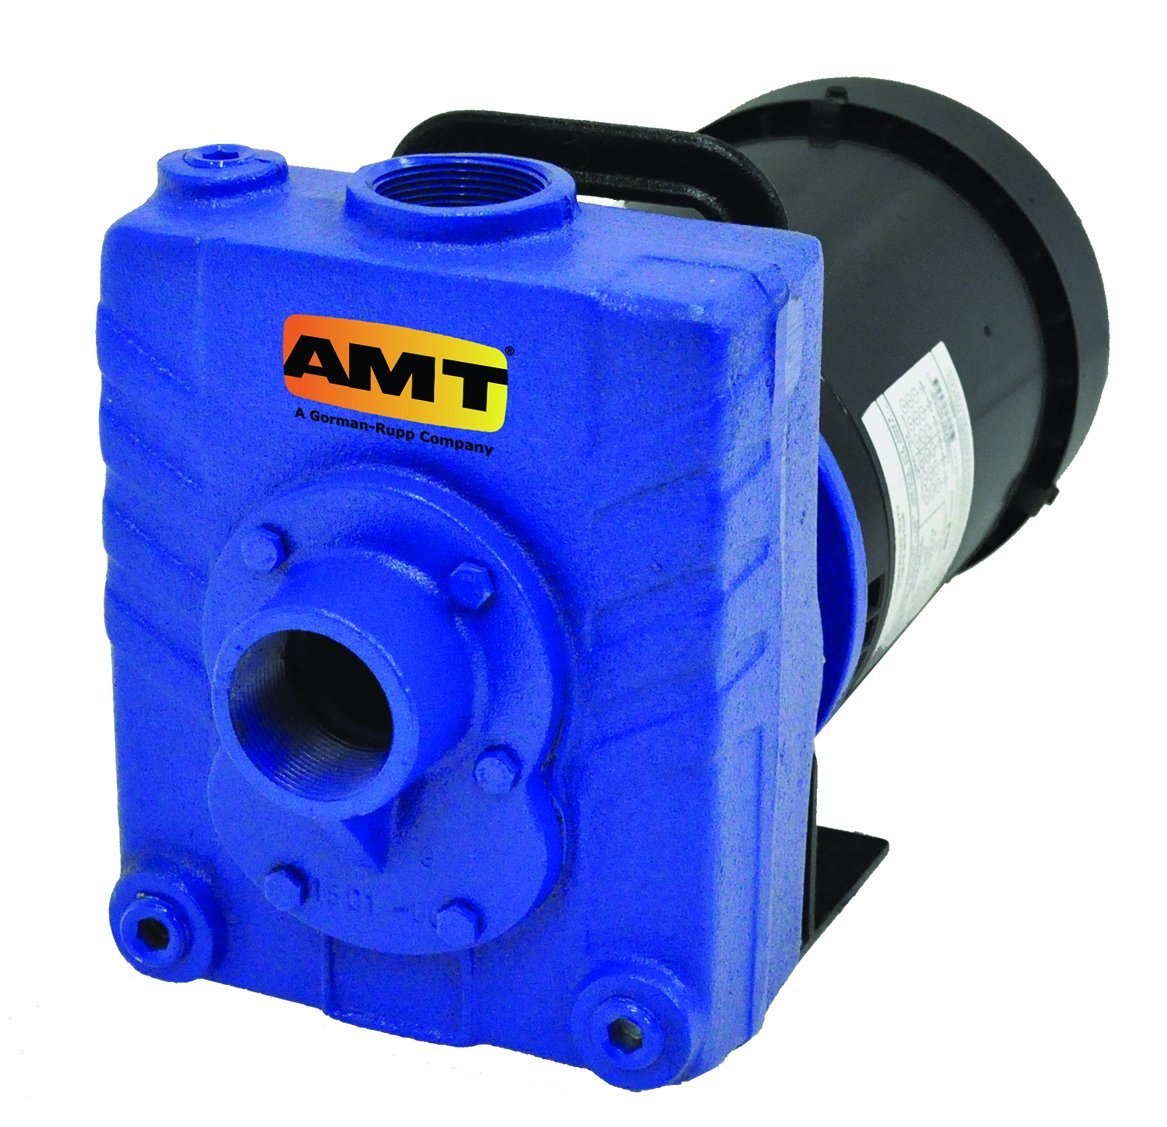 "AMT Pump 282B-95 Self-Priming Centrifugal Pump, Cast Iron, 2 HP, 3 Phase, 230/460V, Curve C, 1-1/2"" NPT Female Suction & Discharge Ports"